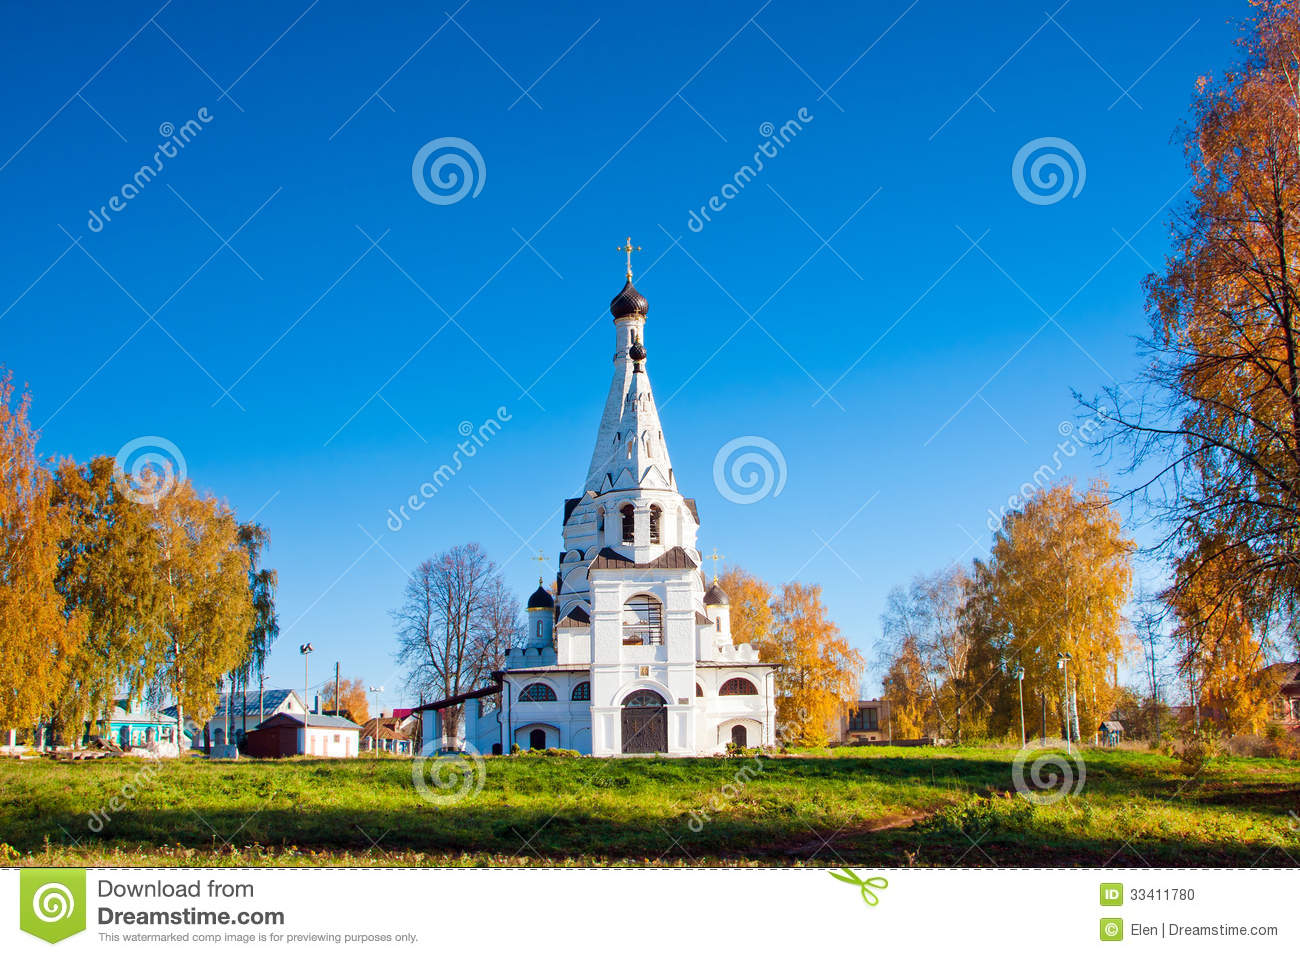 Russia, church in Krasnoe na Volge